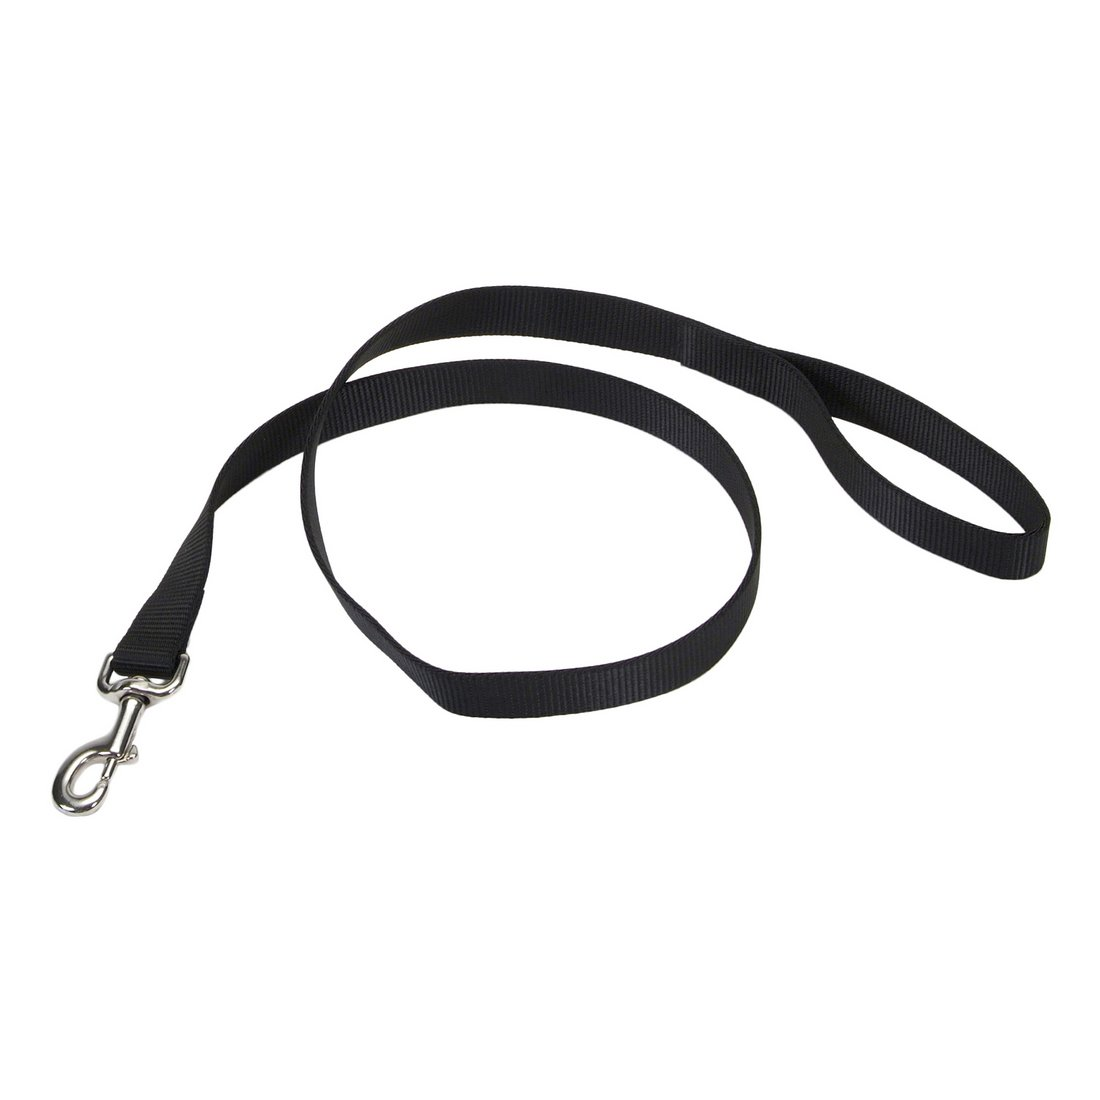 hollywood-feed-nylon-lead-3-4-black